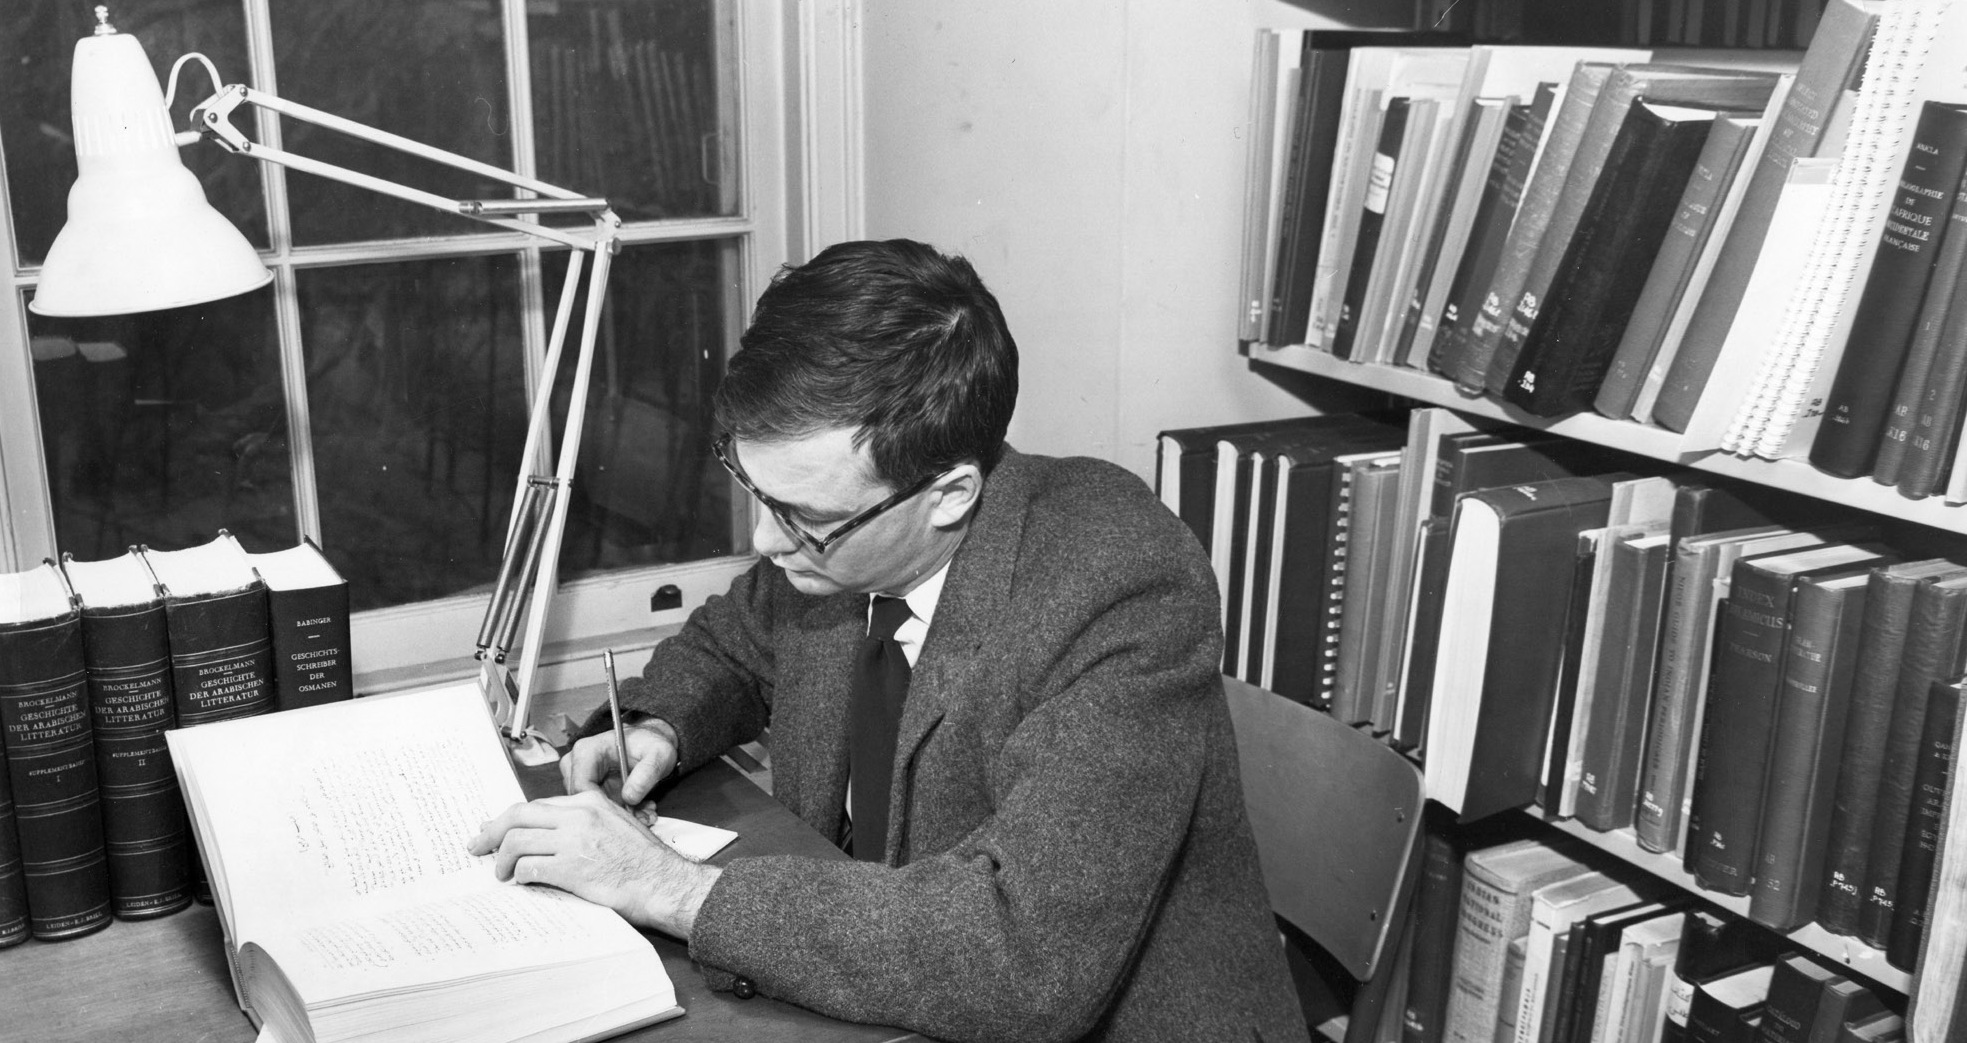 William J. Watson, First Librarian of the Islamic Studies Library, c. 1955